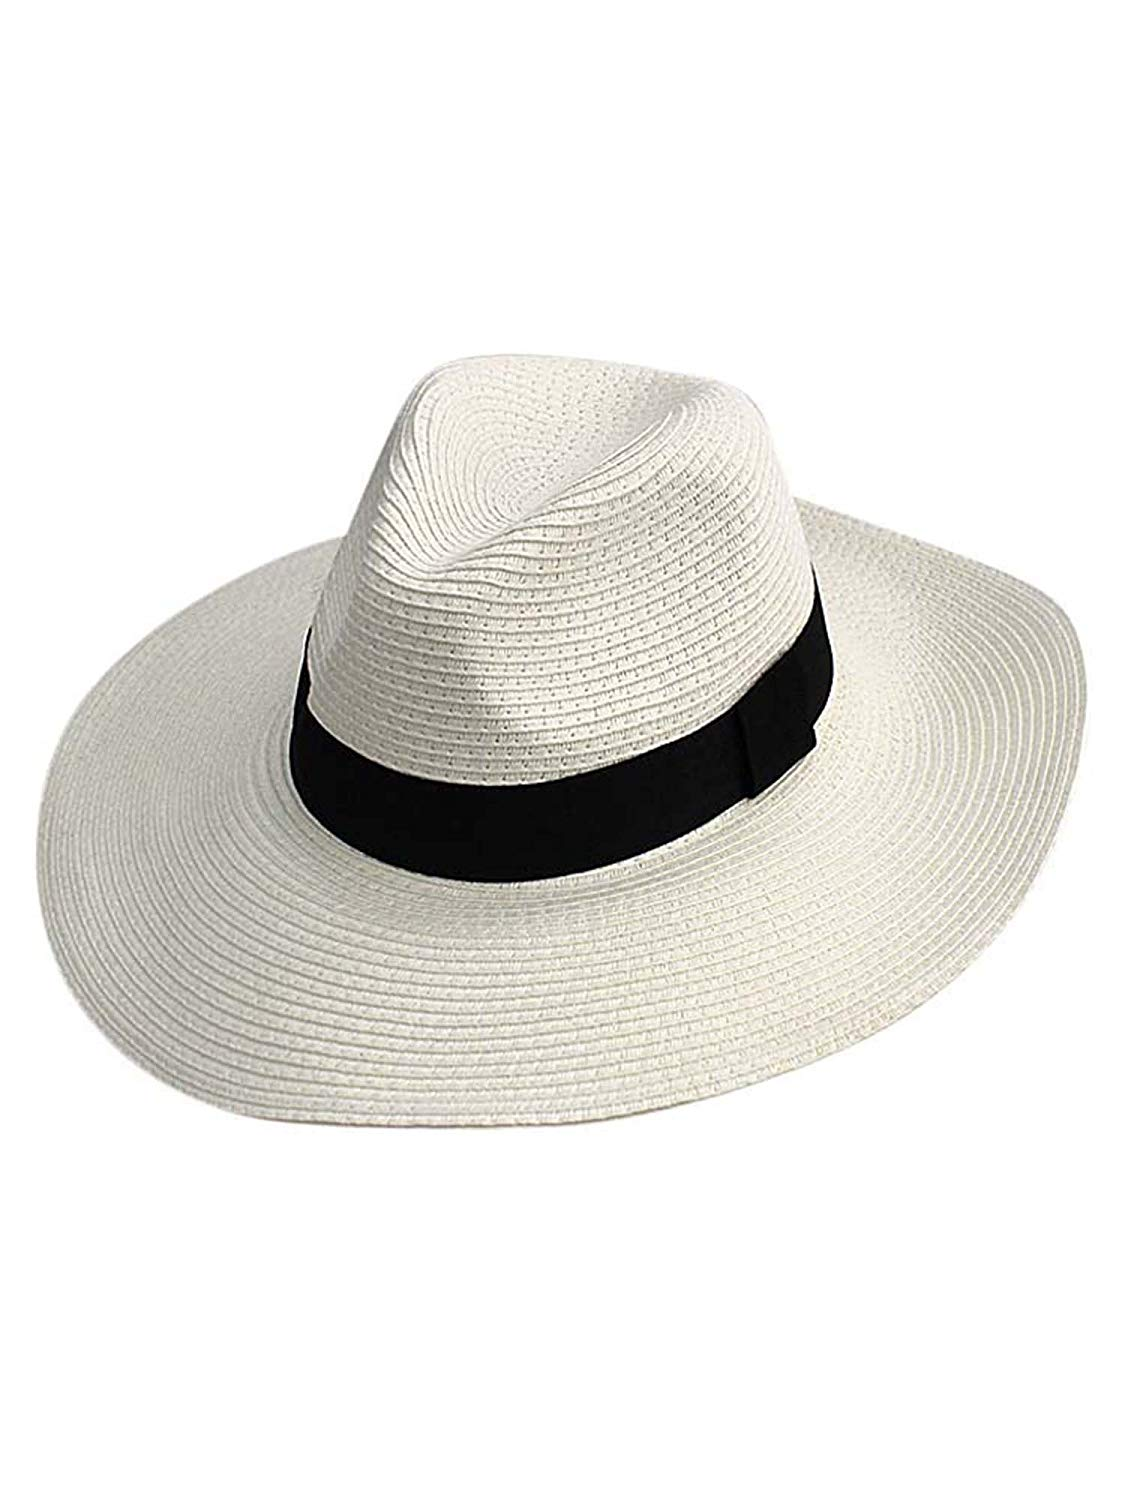 3943944d5bc Get Quotations · Woven Straw Wide Brim Panama Style Sun Hat